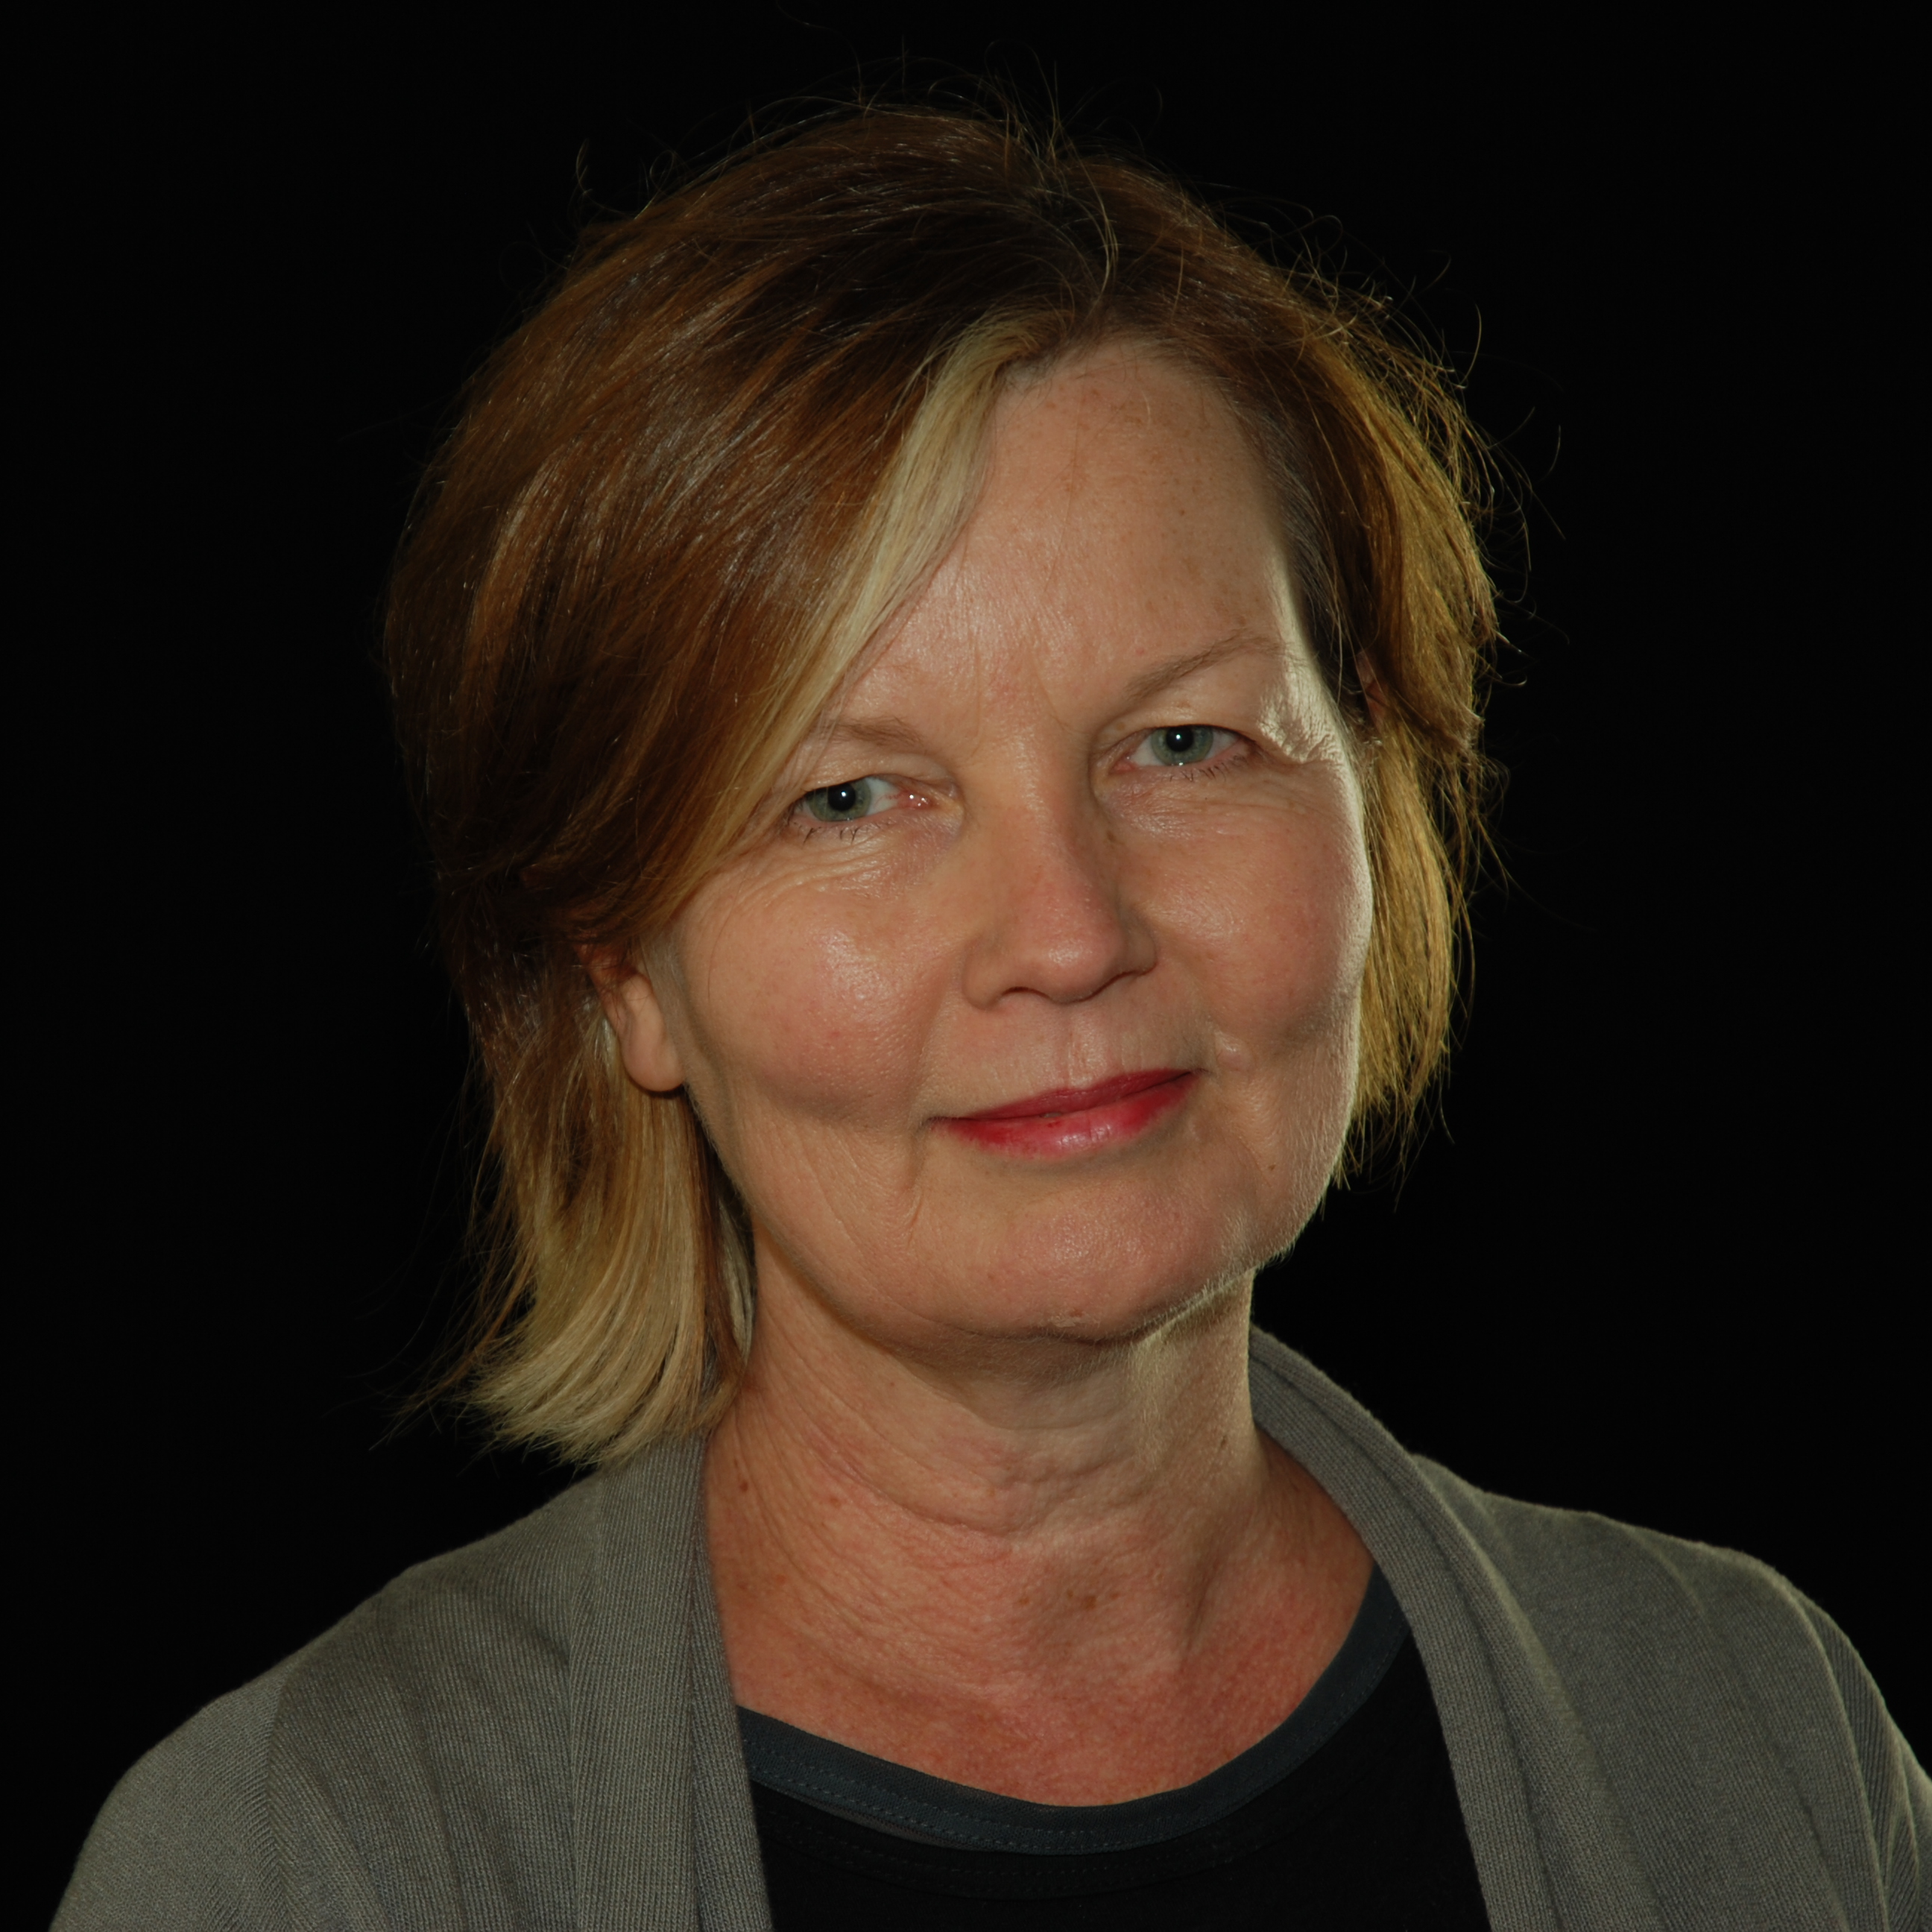 Clare Newton, Associate Professor in Learning Environments at The University of Melbourne